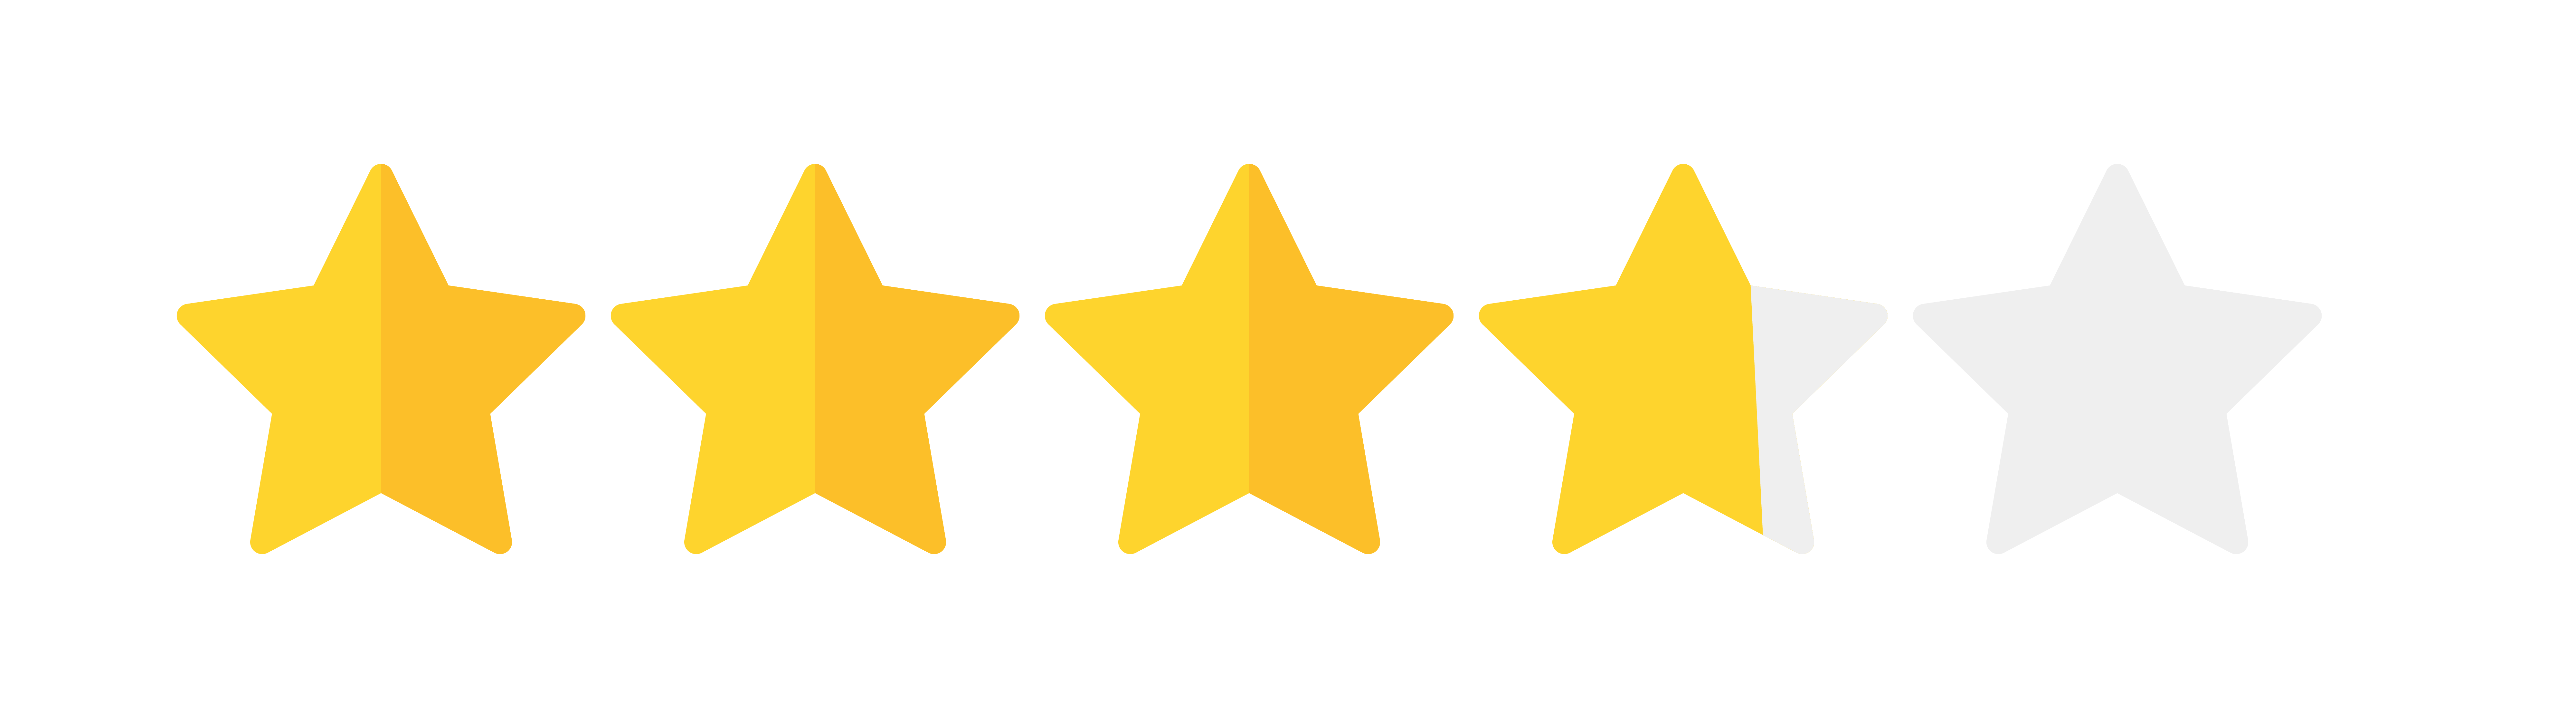 3.8 star-01.png